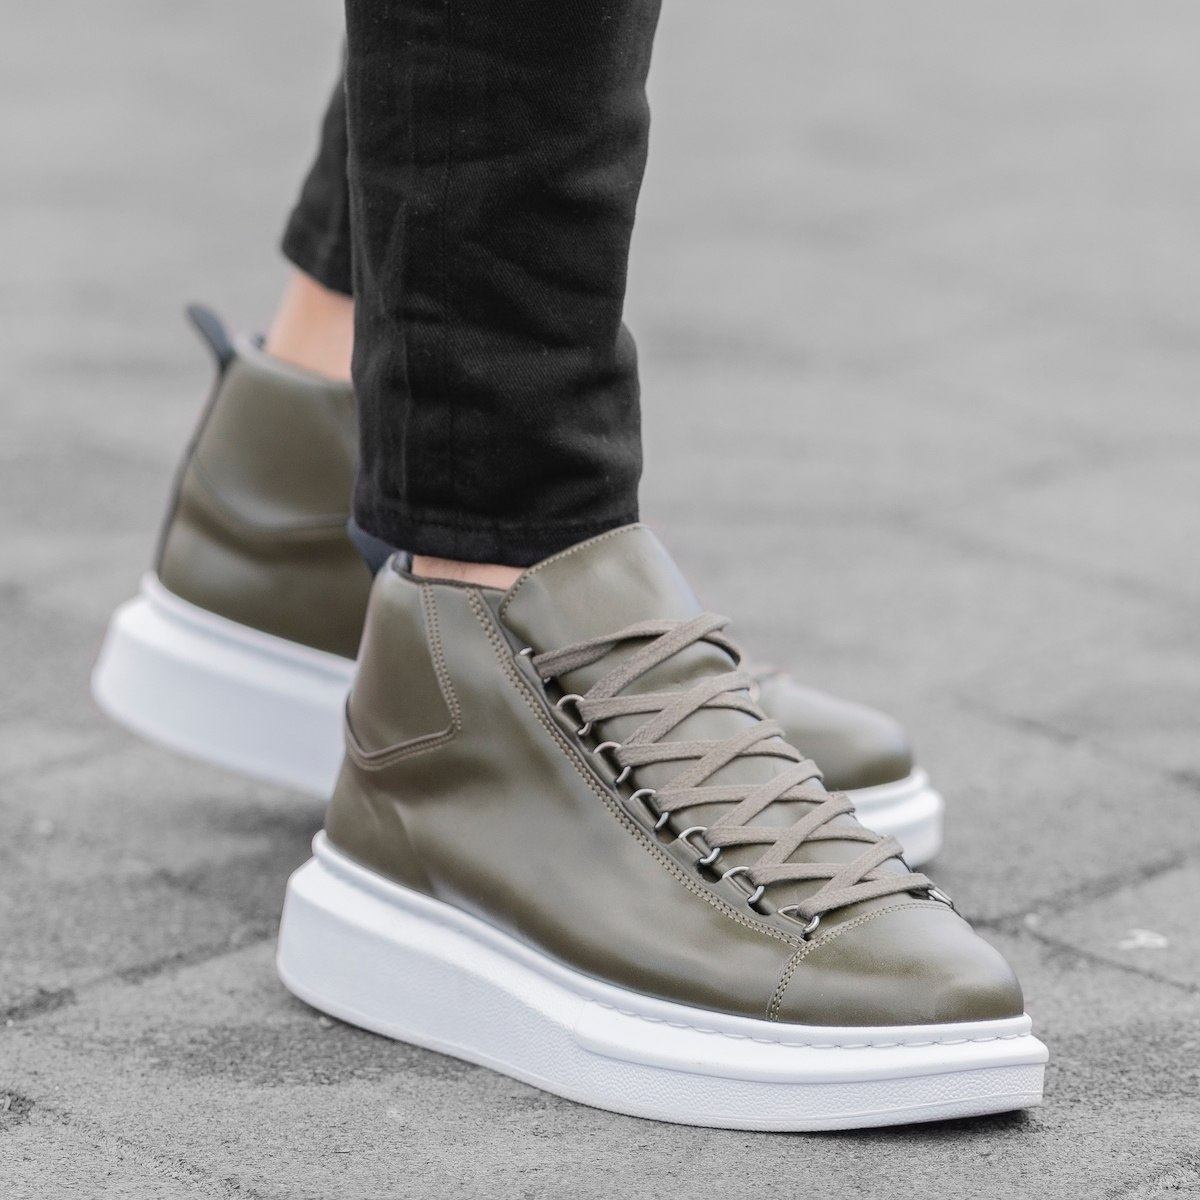 Hype Sole Mox High Top...